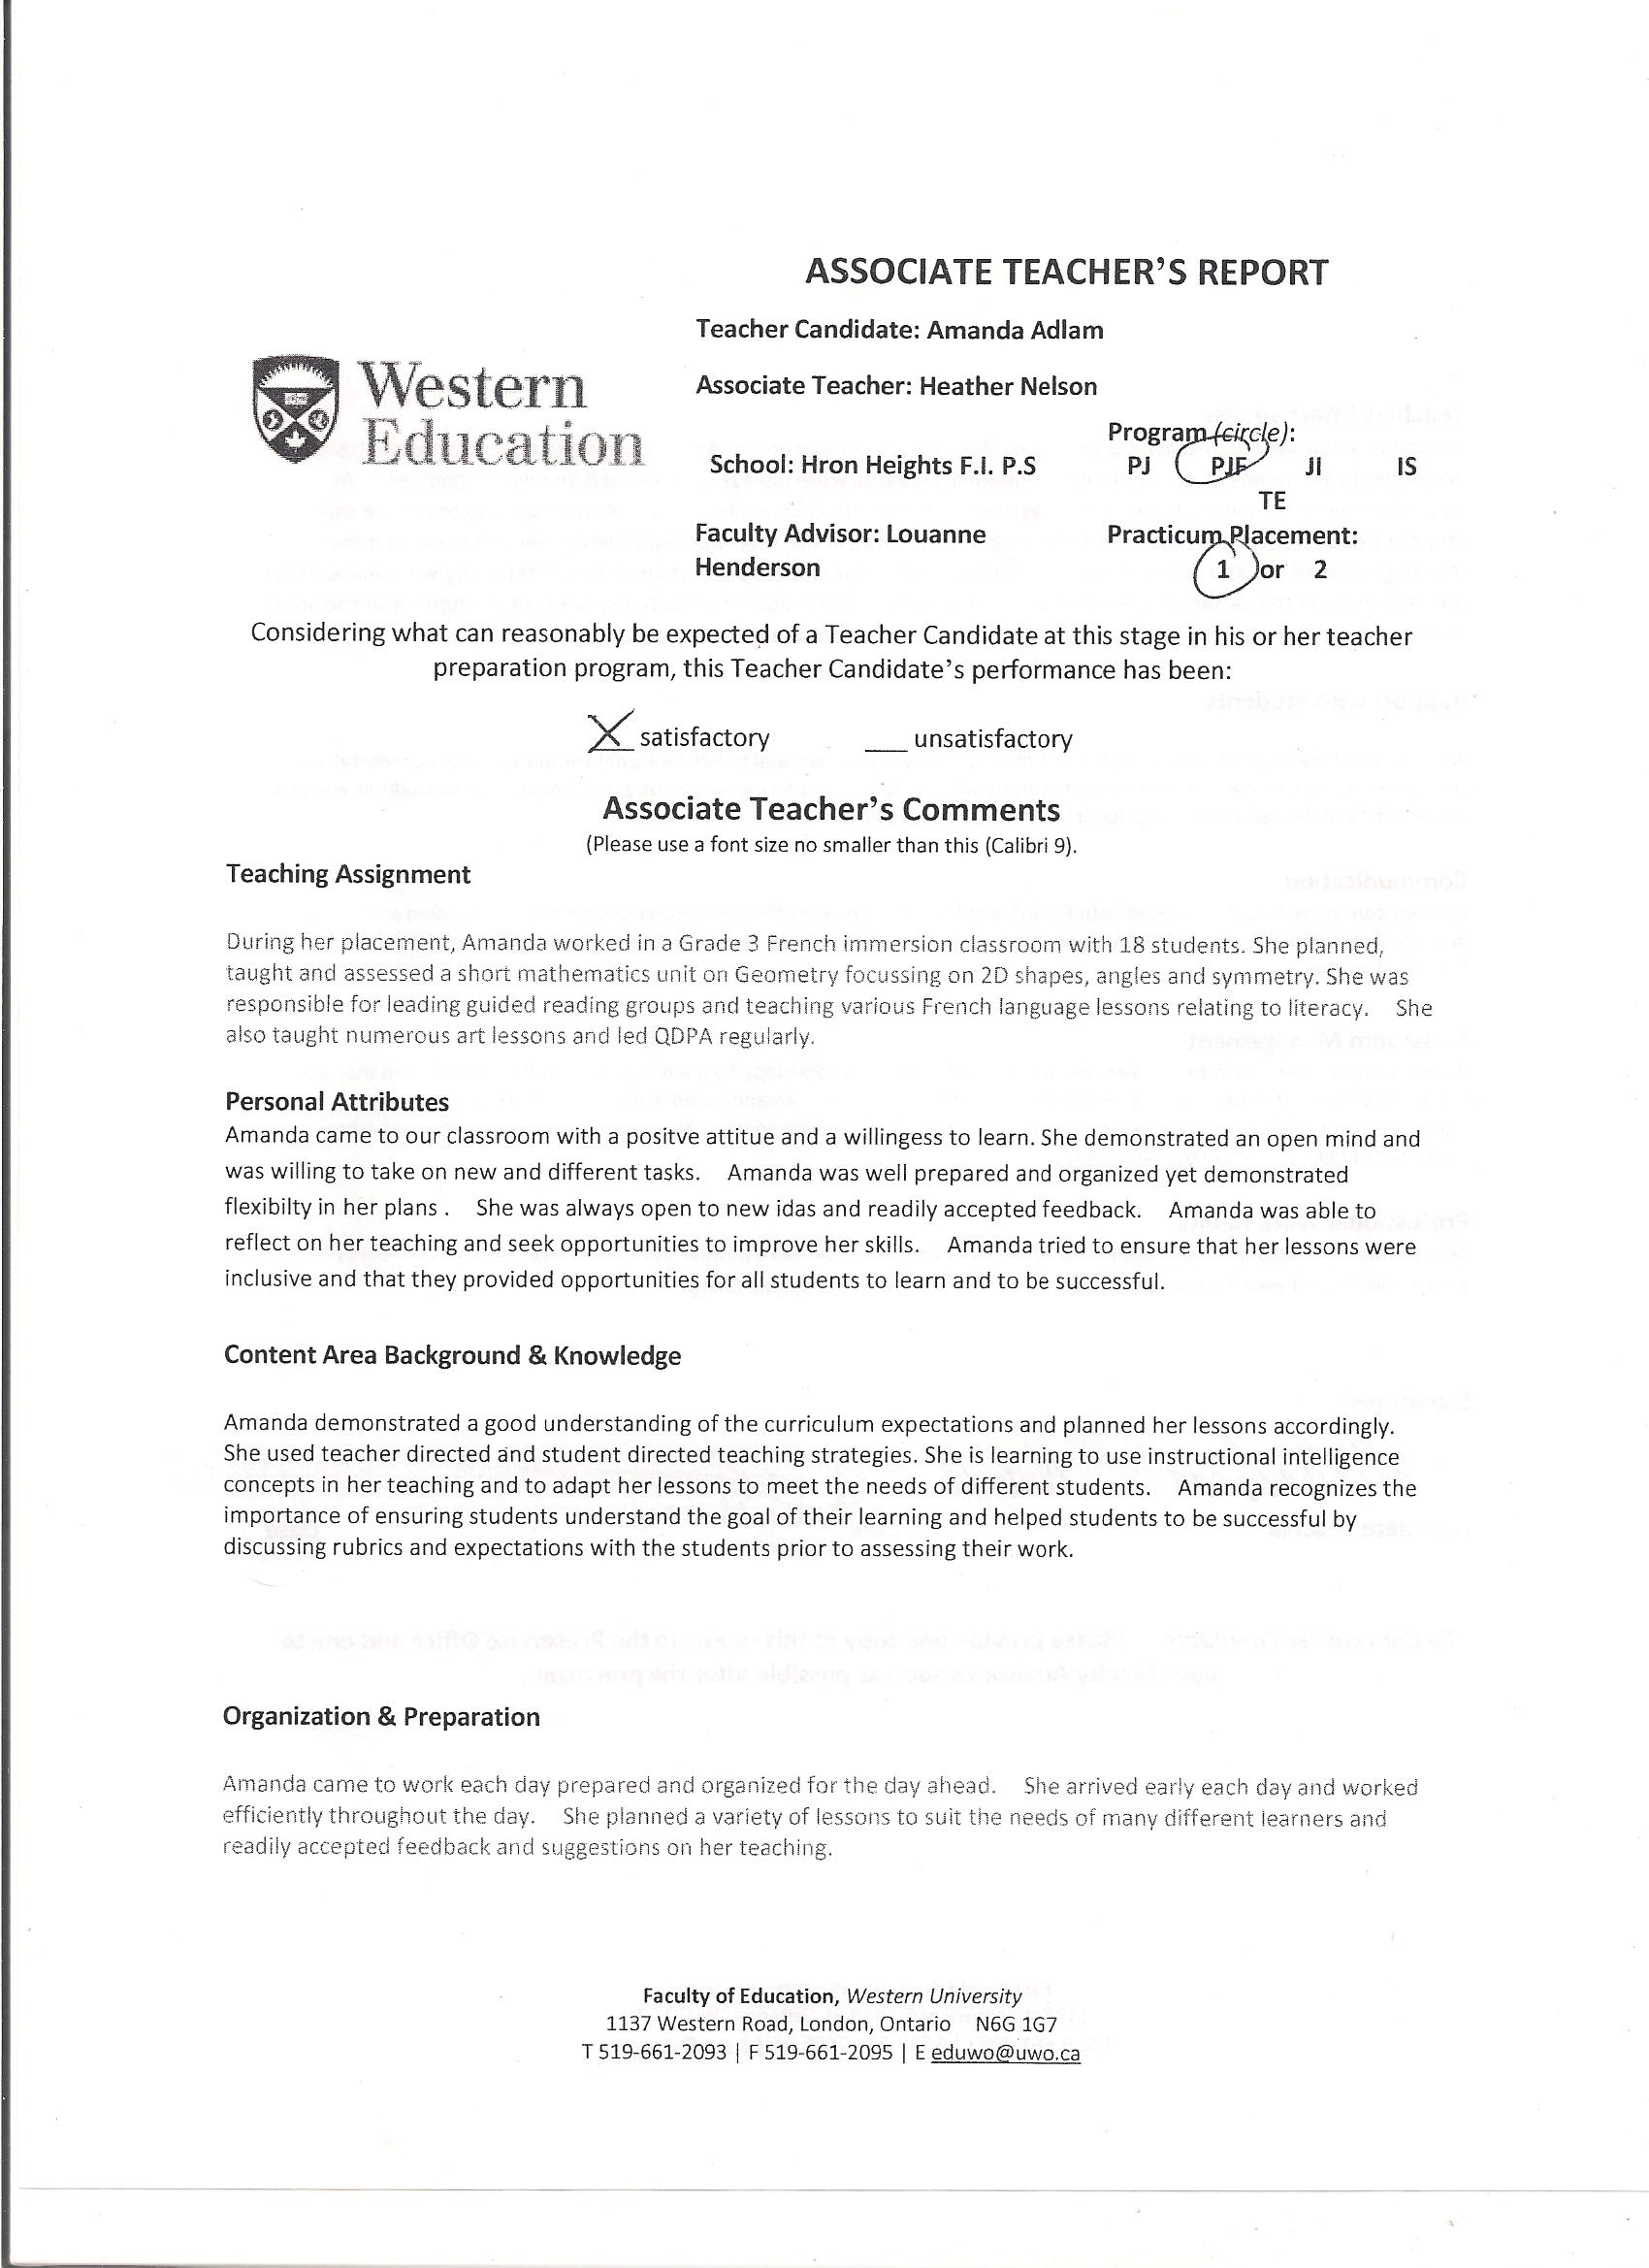 Ontario Teacher Resume Sample Associate Teacher Comments Amanda Adlam